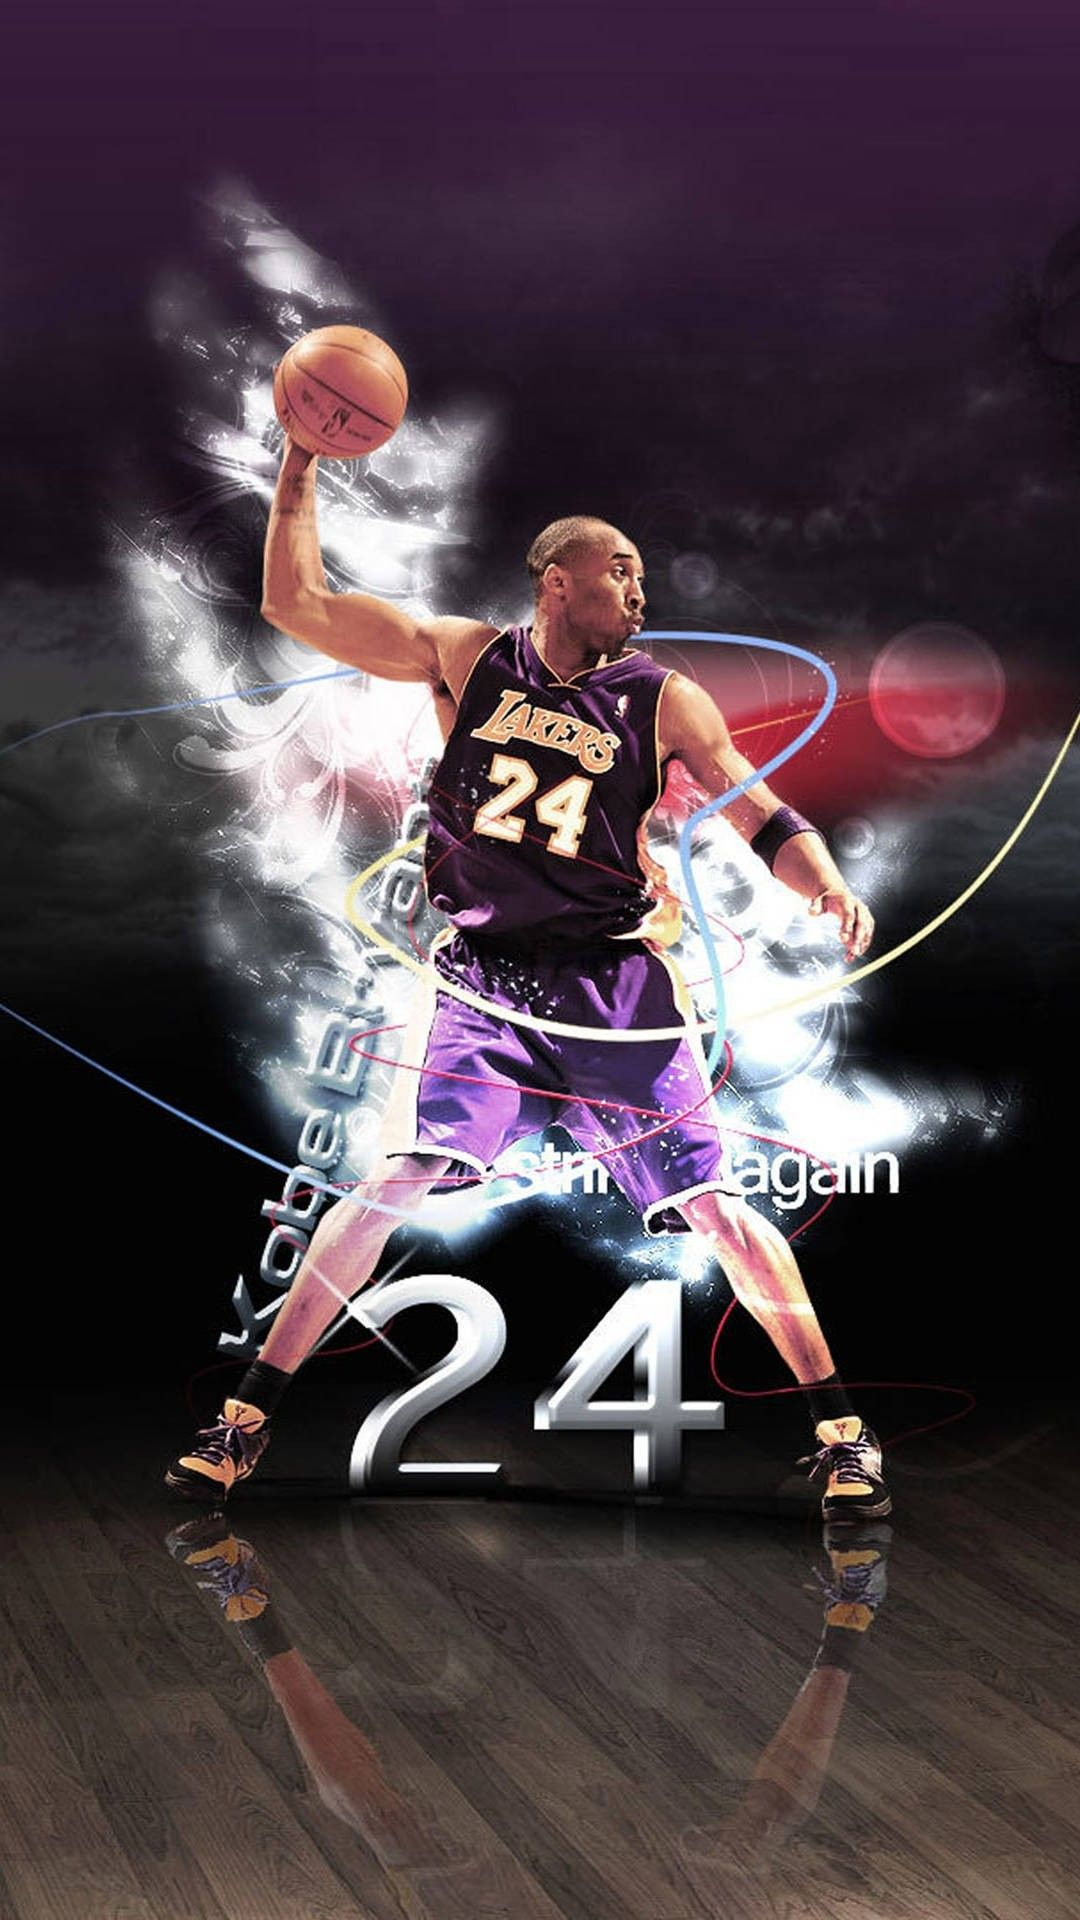 Dunk Kobe Bryant Iphone Background In 2020 Kobe Kobe Bryant